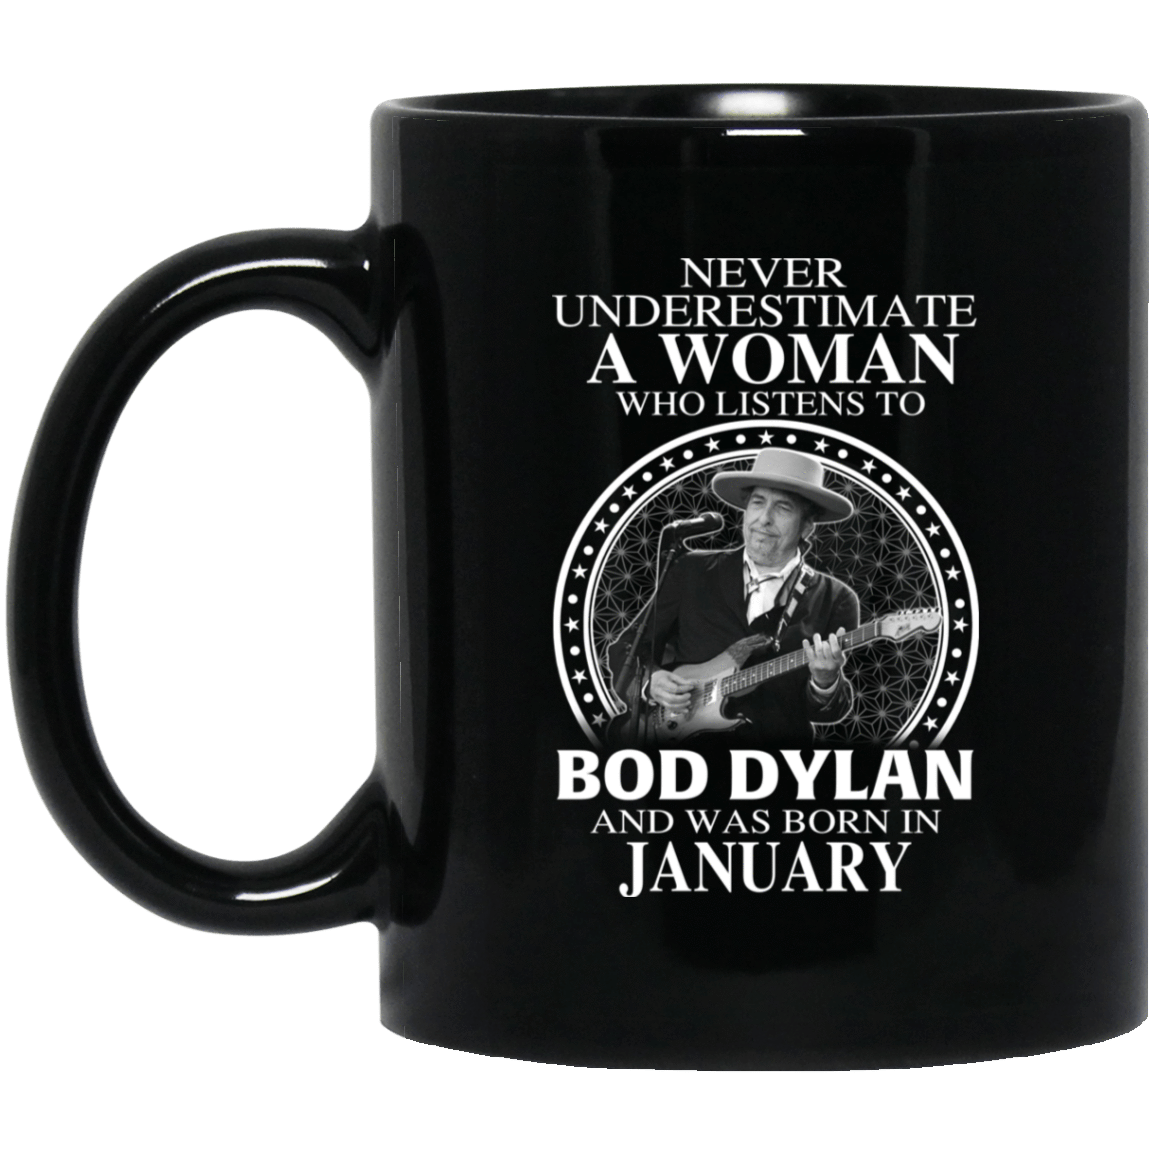 A Woman Who Listens To Bob Dylan And Was Born In January Mug 1065-10181-76154525-49307 - Tee Ript